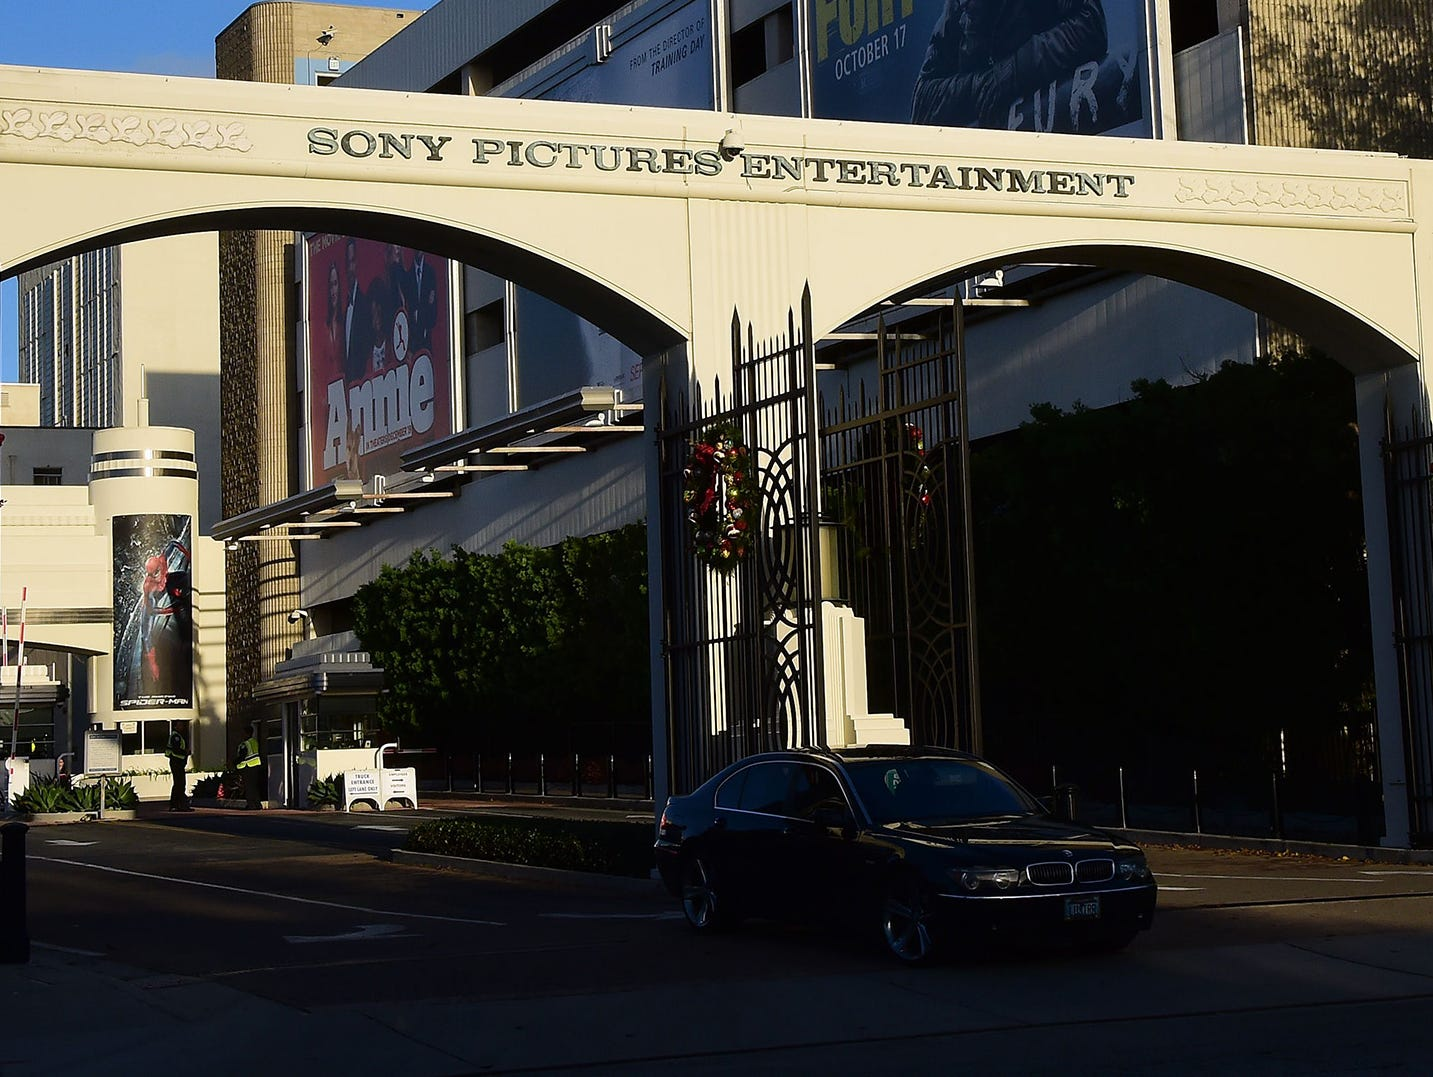 A vehicle exits Sony Pictures Entertainment in Los Angeles on Thursday, Dec. 4, 2014, a day after Sony Pictures denounced a